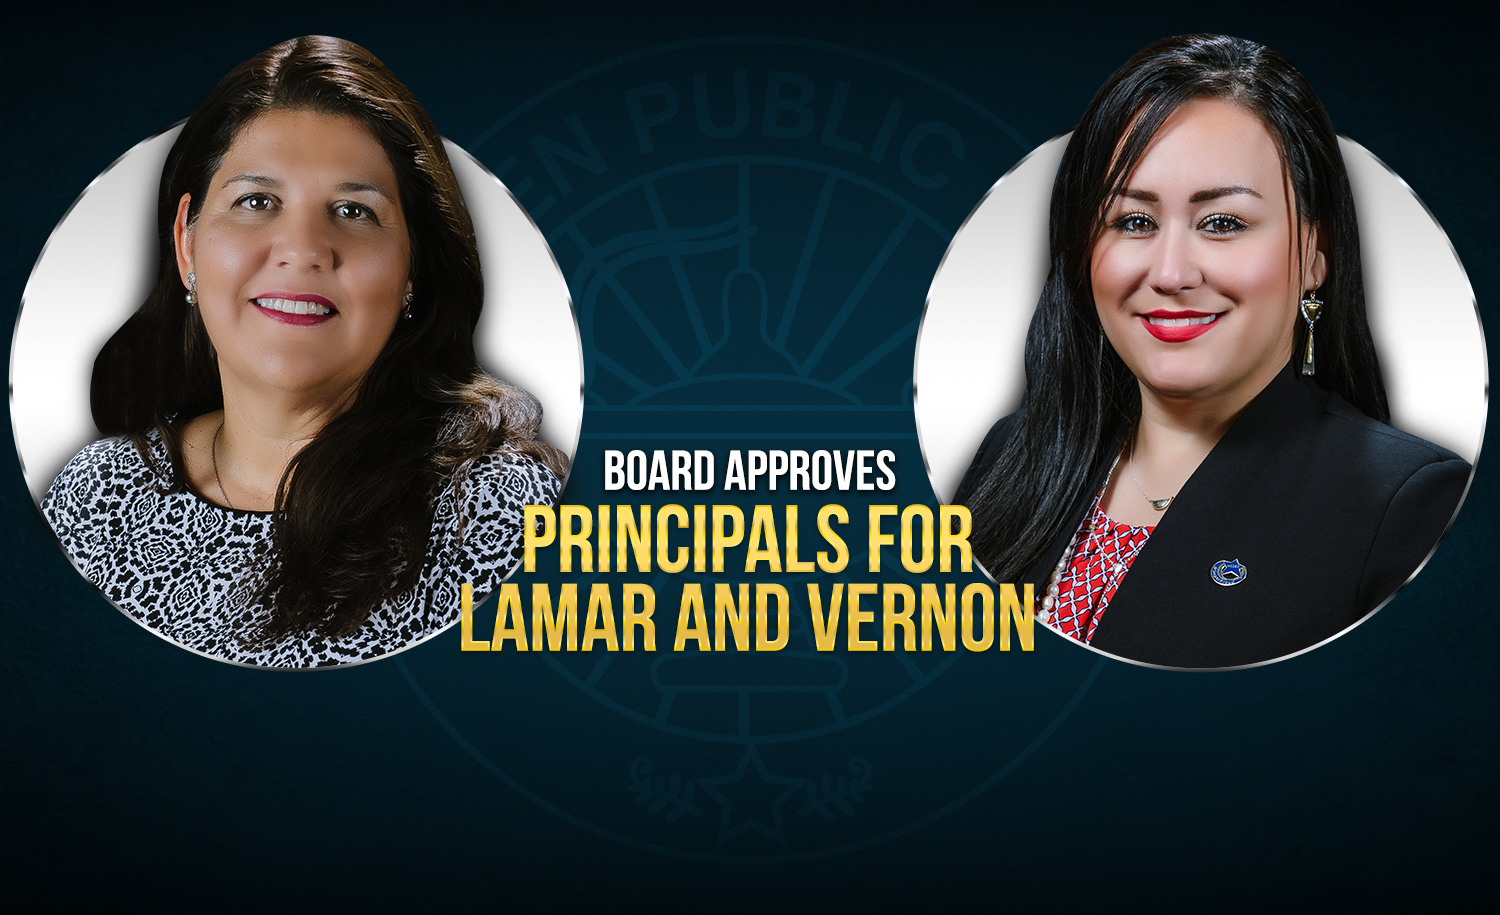 Board approves principals for Lamar and Vernon